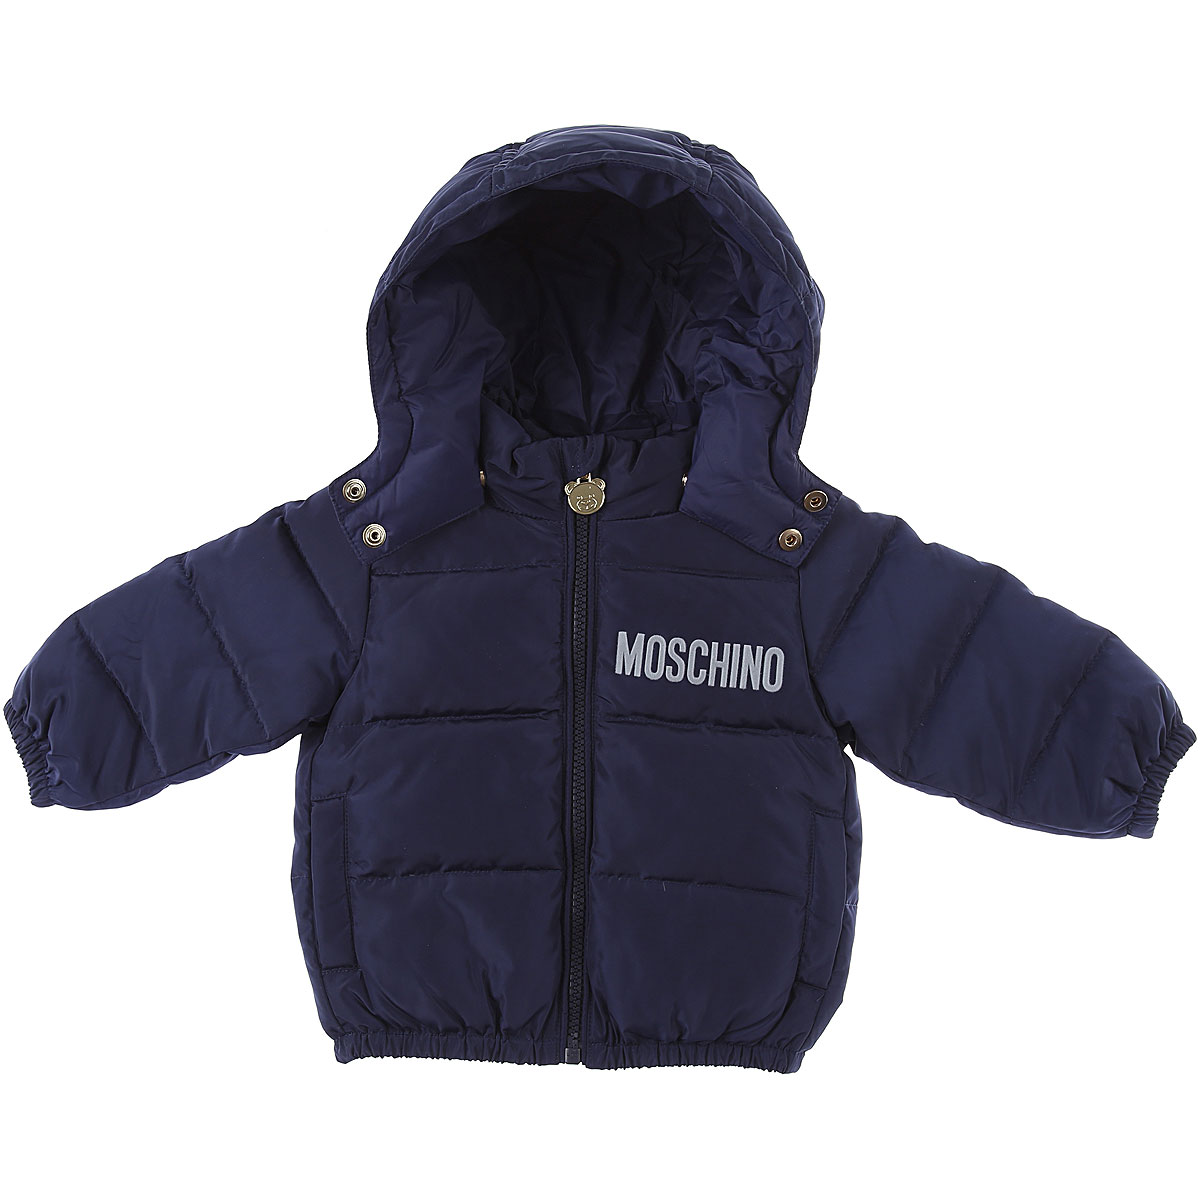 Moschino Baby Down Jacket for Boys On Sale, Blue, polyamide, 2019, 12 M 18M 24M 2Y 3Y 6M 9M